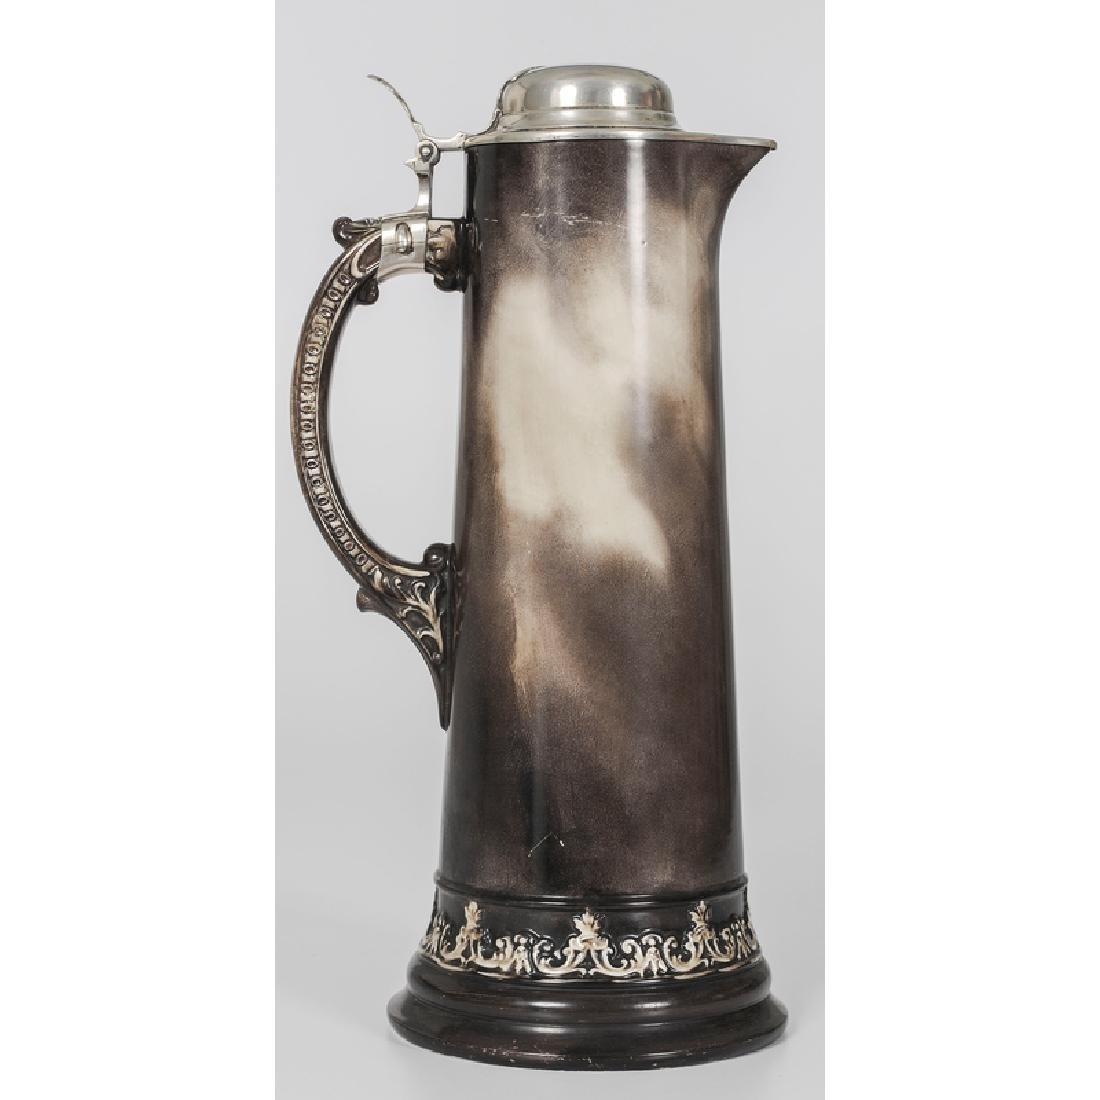 Lenox Porcelain Tankard with Gorham Sterling Lid - 2